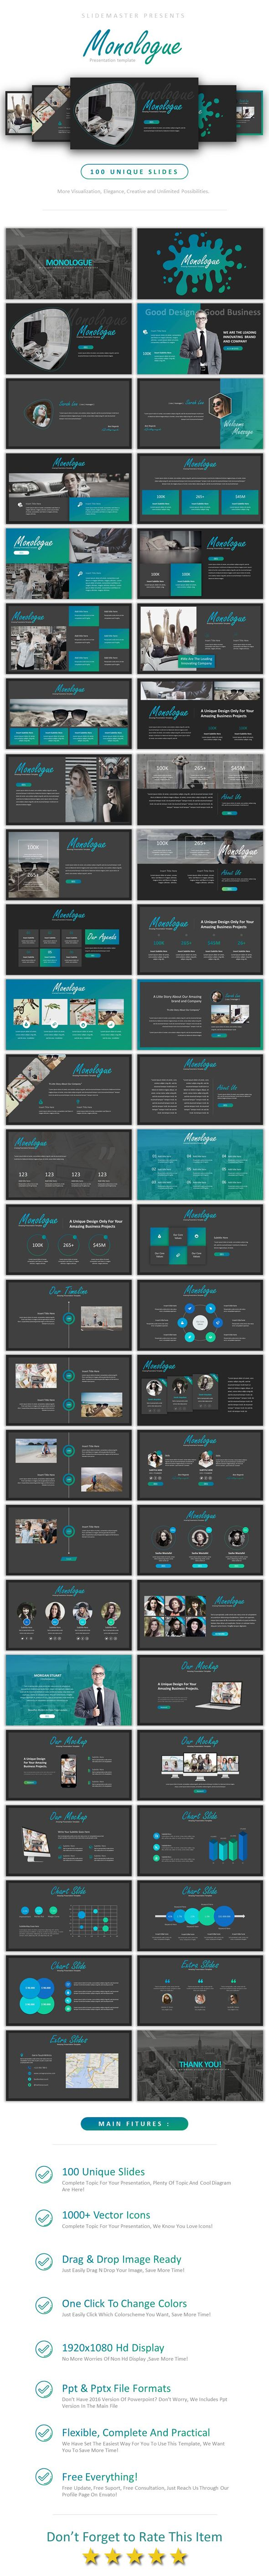 Monologue powerpoint business powerpoint templates best monologue powerpoint business powerpoint templates best powerpoint template pinterest business powerpoint templates template and presentation wajeb Images